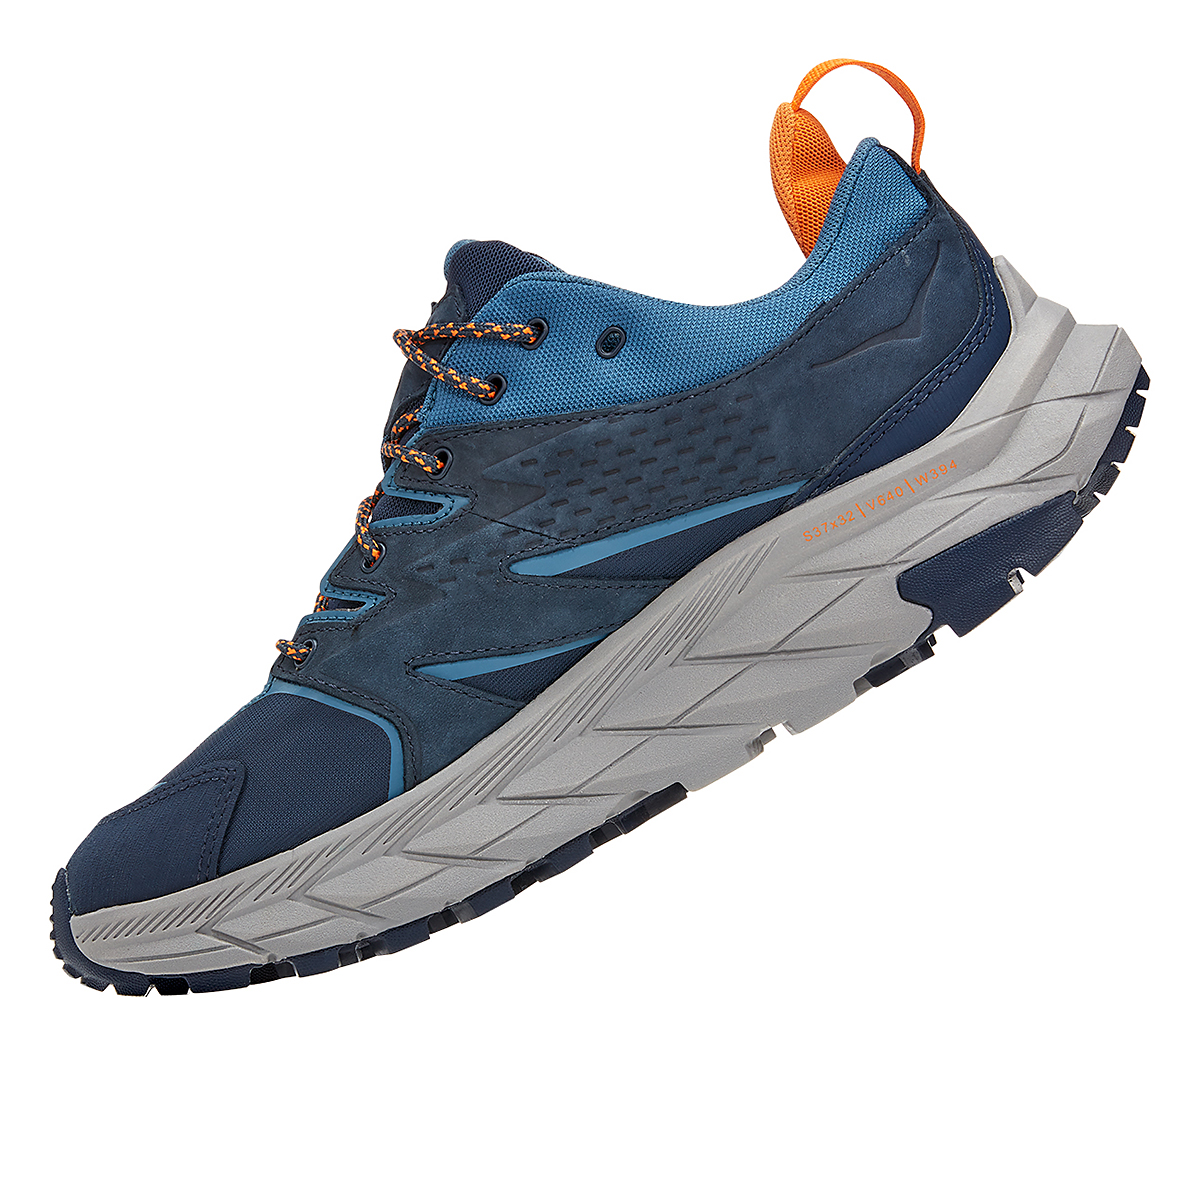 Men's Hoka One One Anacapa Low Gore-Tex Trail Running Shoe - Color: Outer Space/Real Teal - Size: 7 - Width: Regular, Outer Space/Real Teal, large, image 4